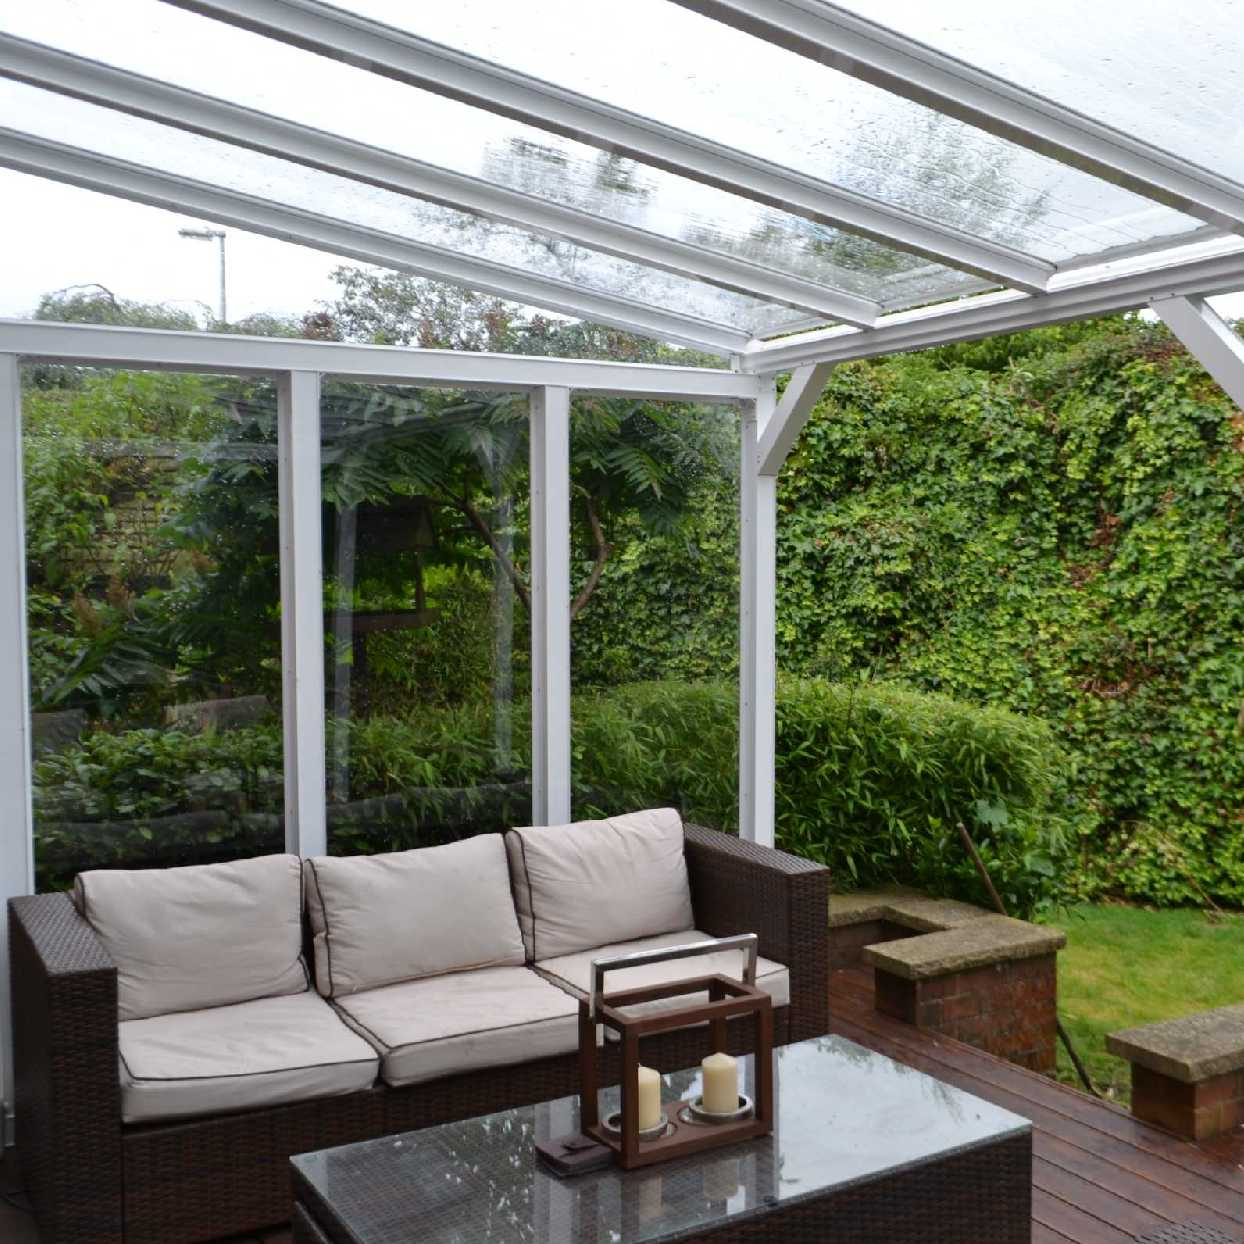 Great selection of Omega Smart Lean-To Canopy with 16mm Polycarbonate Glazing - 6.3m (W) x 1.5m (P), (4) Supporting Posts